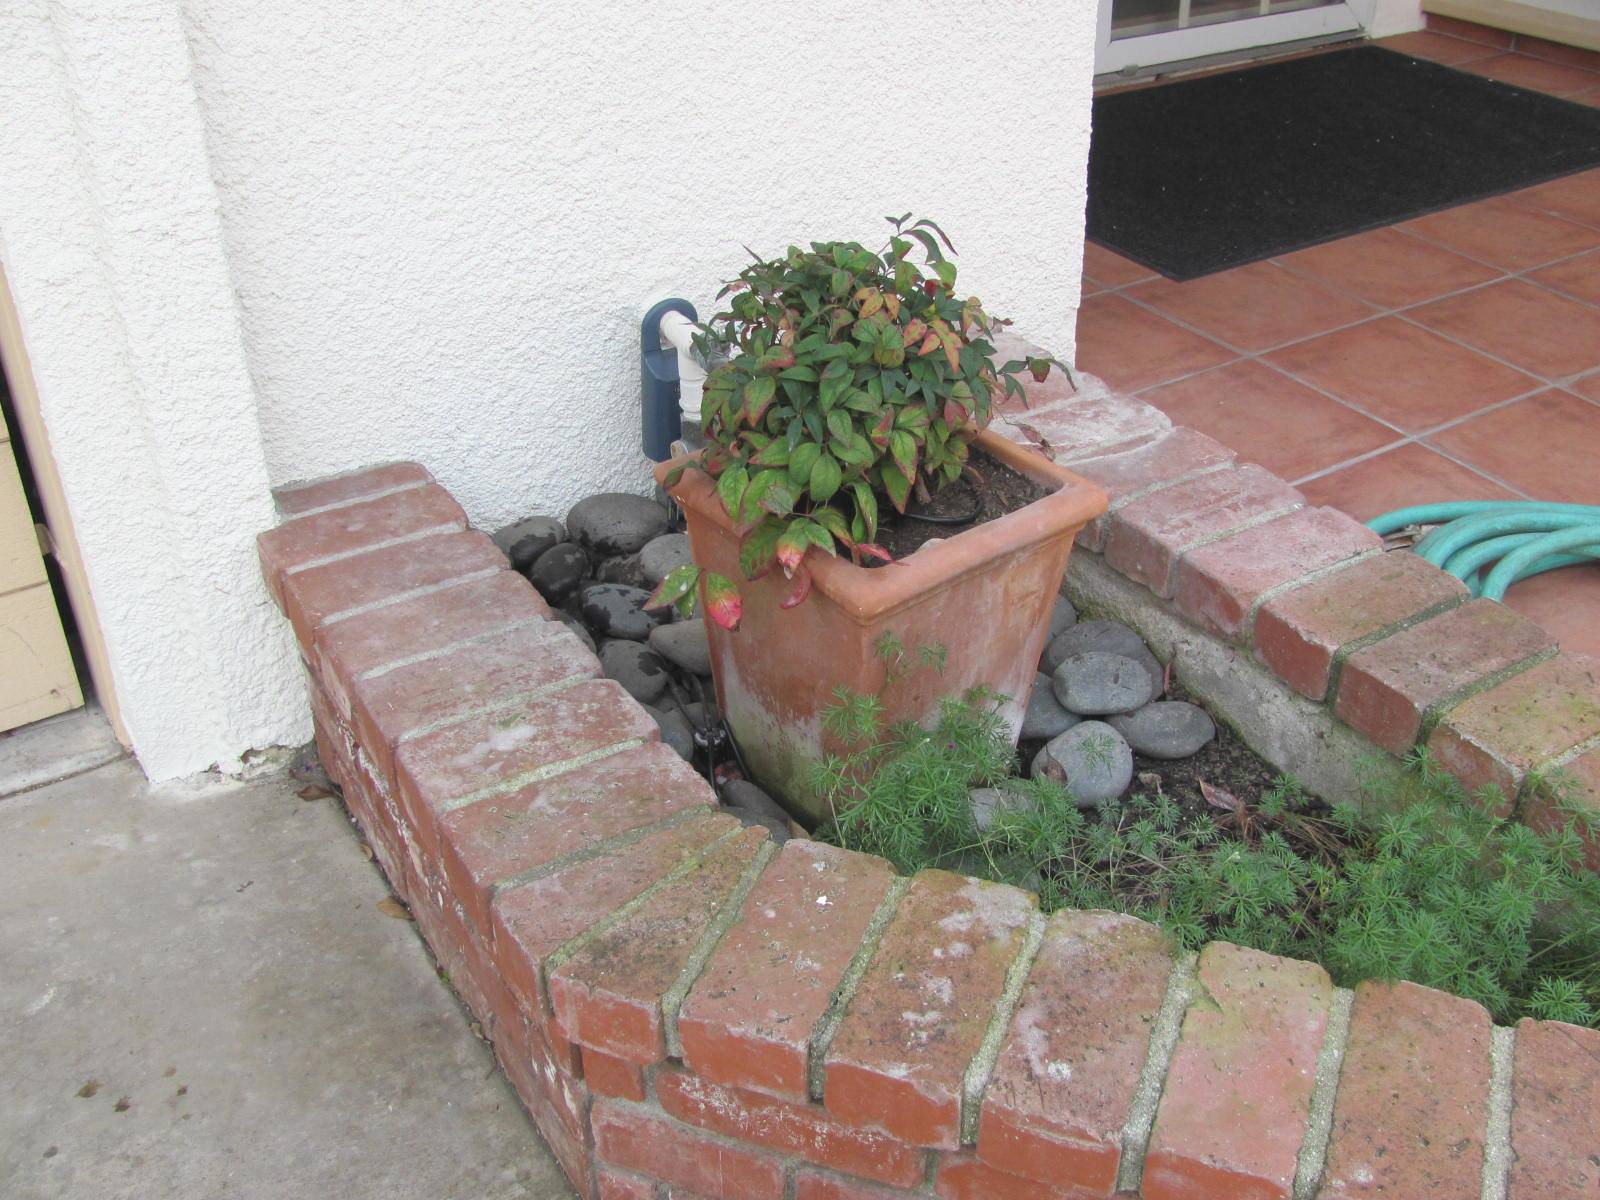 Planter against a homes wall or siding